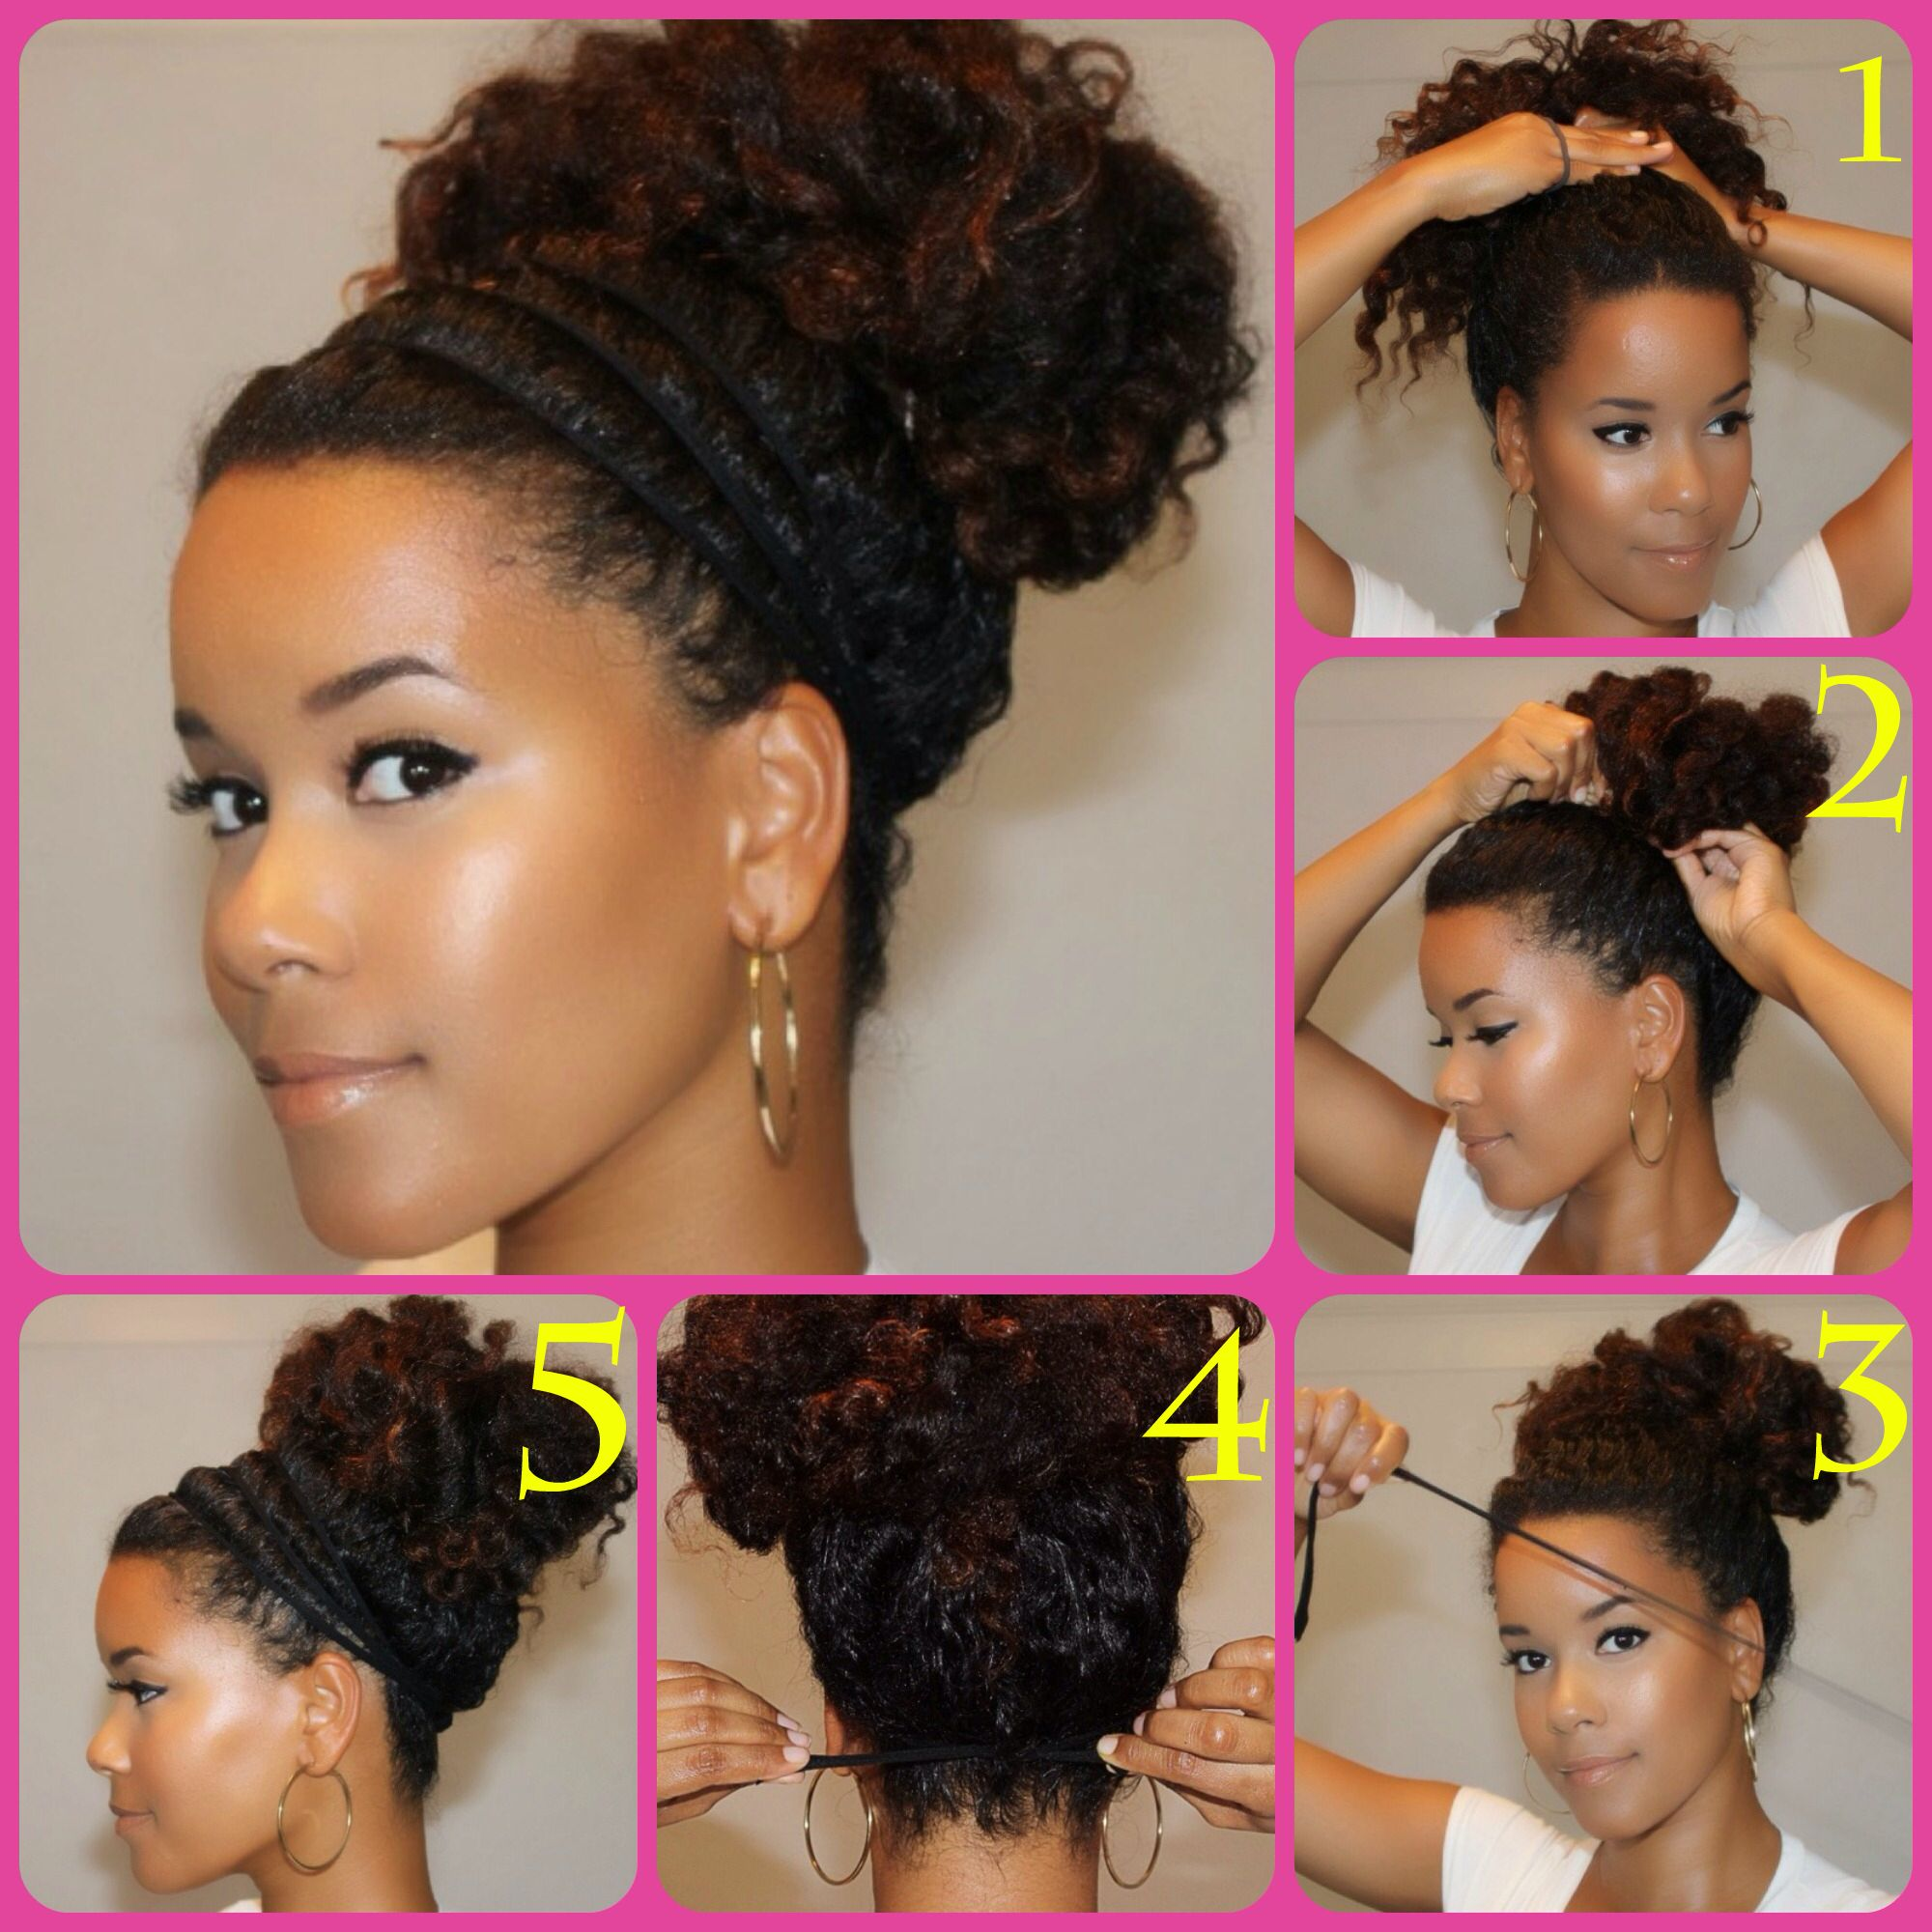 Pin By Sharl H On Hairstory Curly Hair Styles Naturally Hair Styles Natural Hair Styles